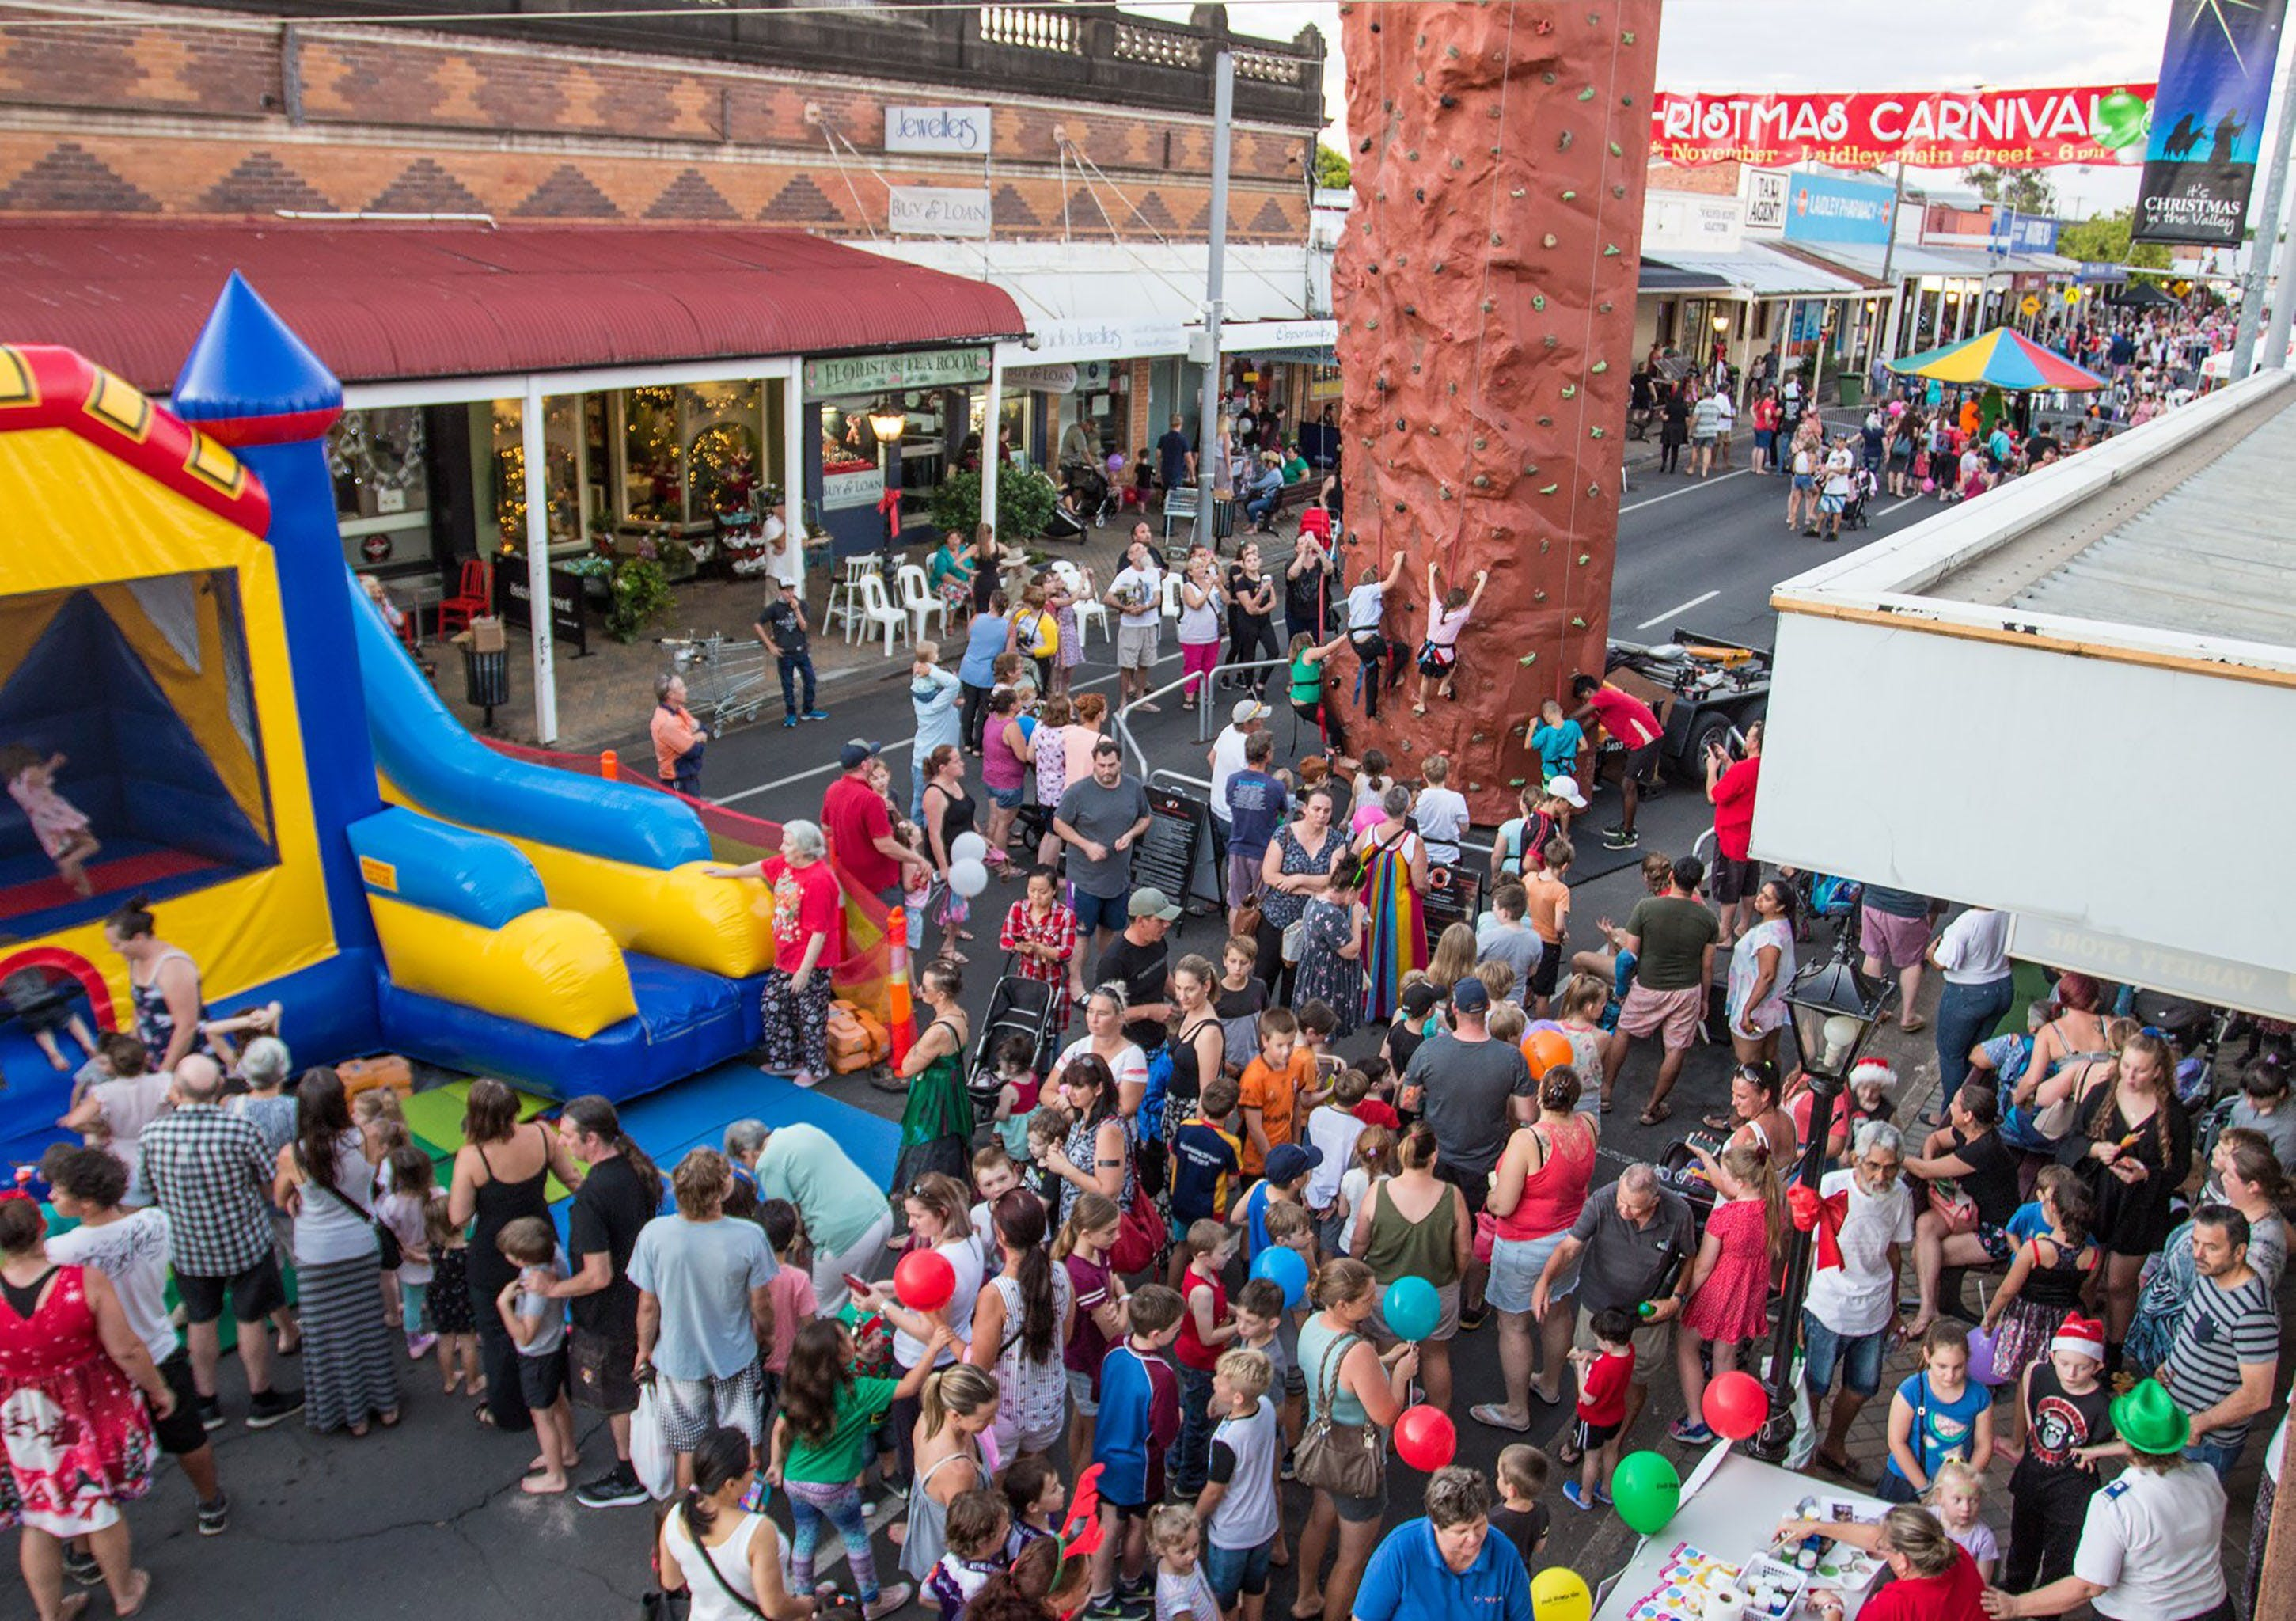 Laidley Christmas Street Festival - Bundaberg Accommodation